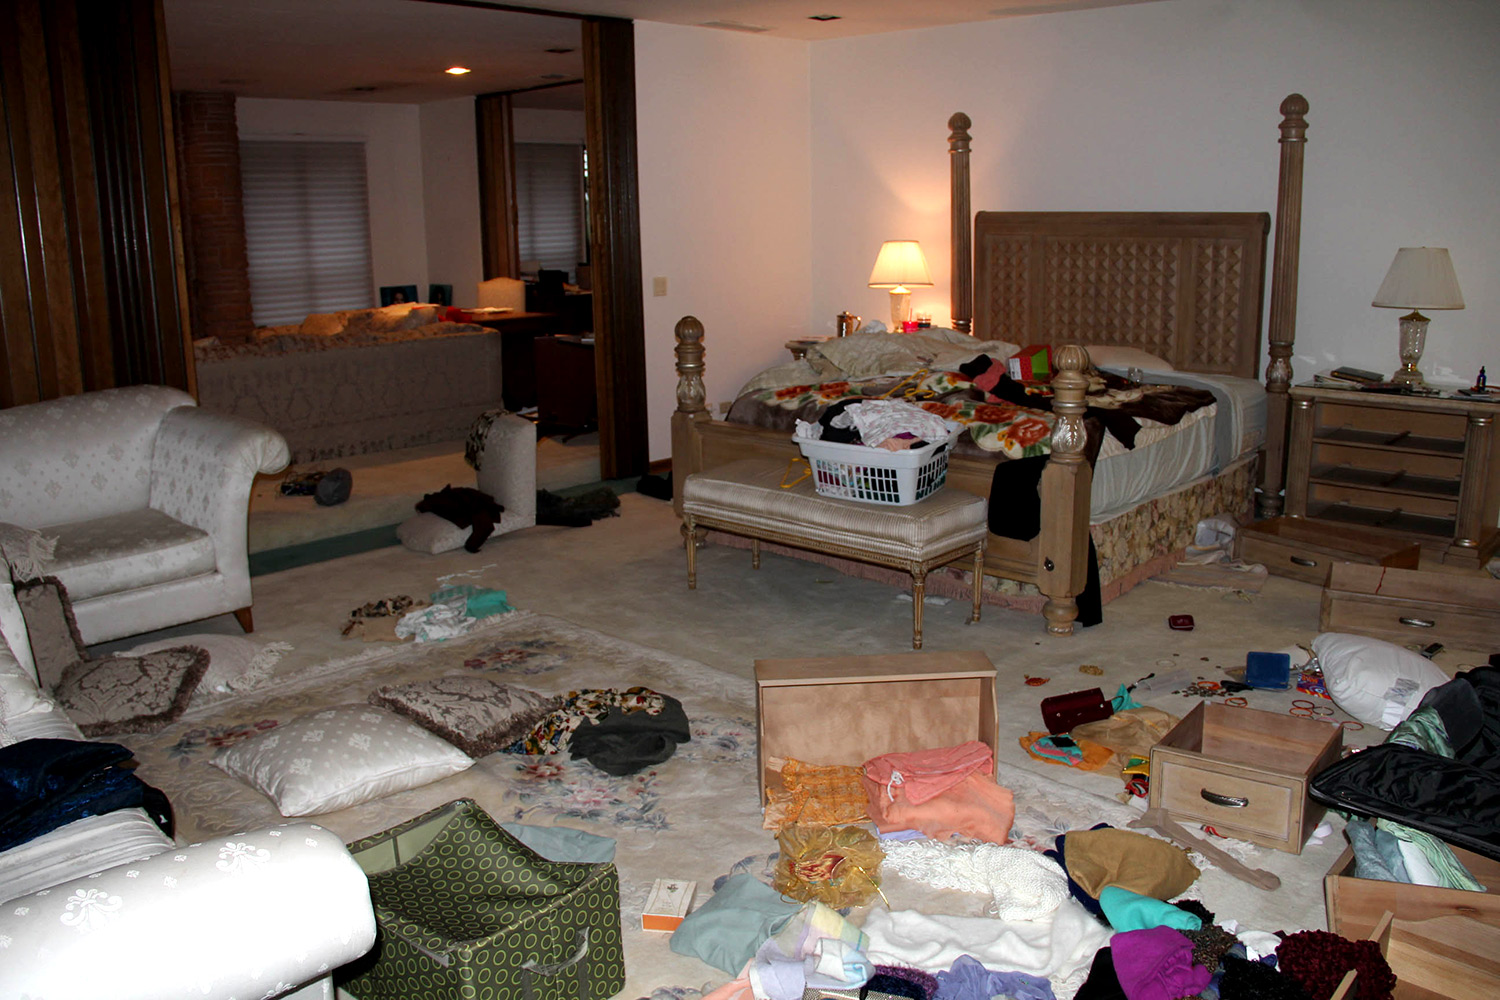 The perpetrators ransacked the Kumra mansion. They left with more than $100,000 in cash and jewelry. (Los Gatos-Monte Sereno Police Department)